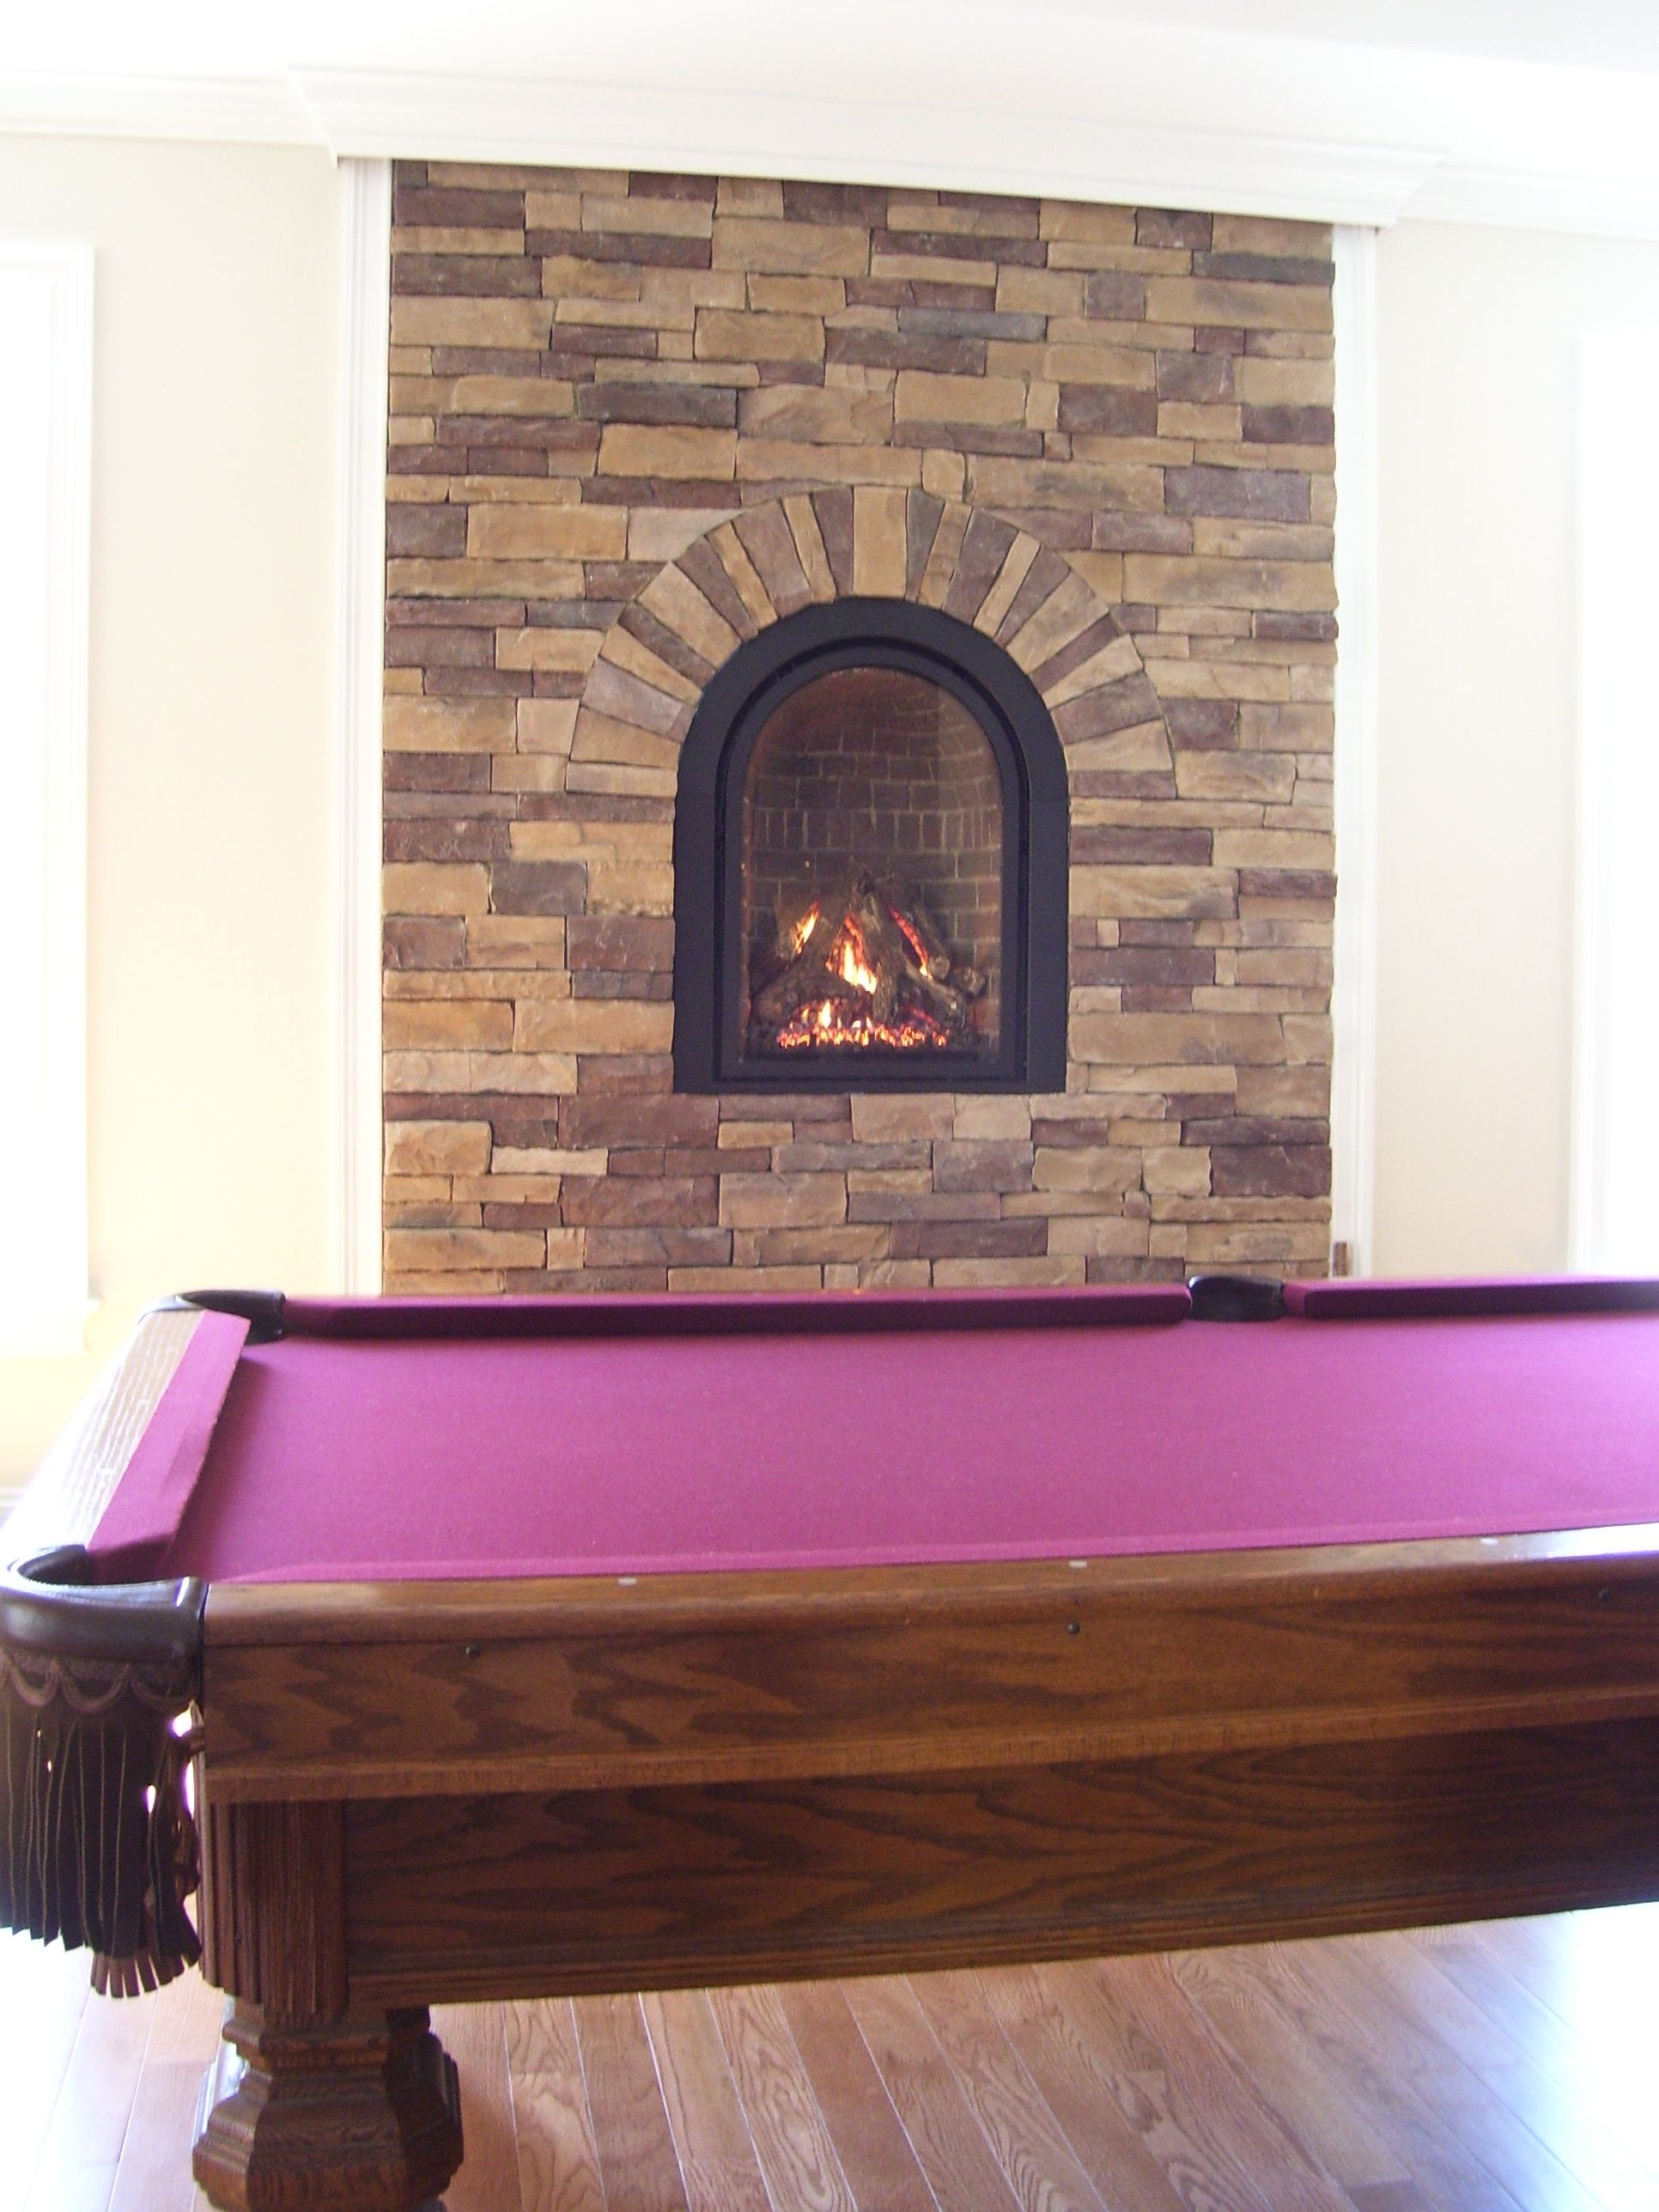 The Compact Arched Mendota M 27 Chelsea Direct Vent Gas Fireplace Perfect To Warm Up The